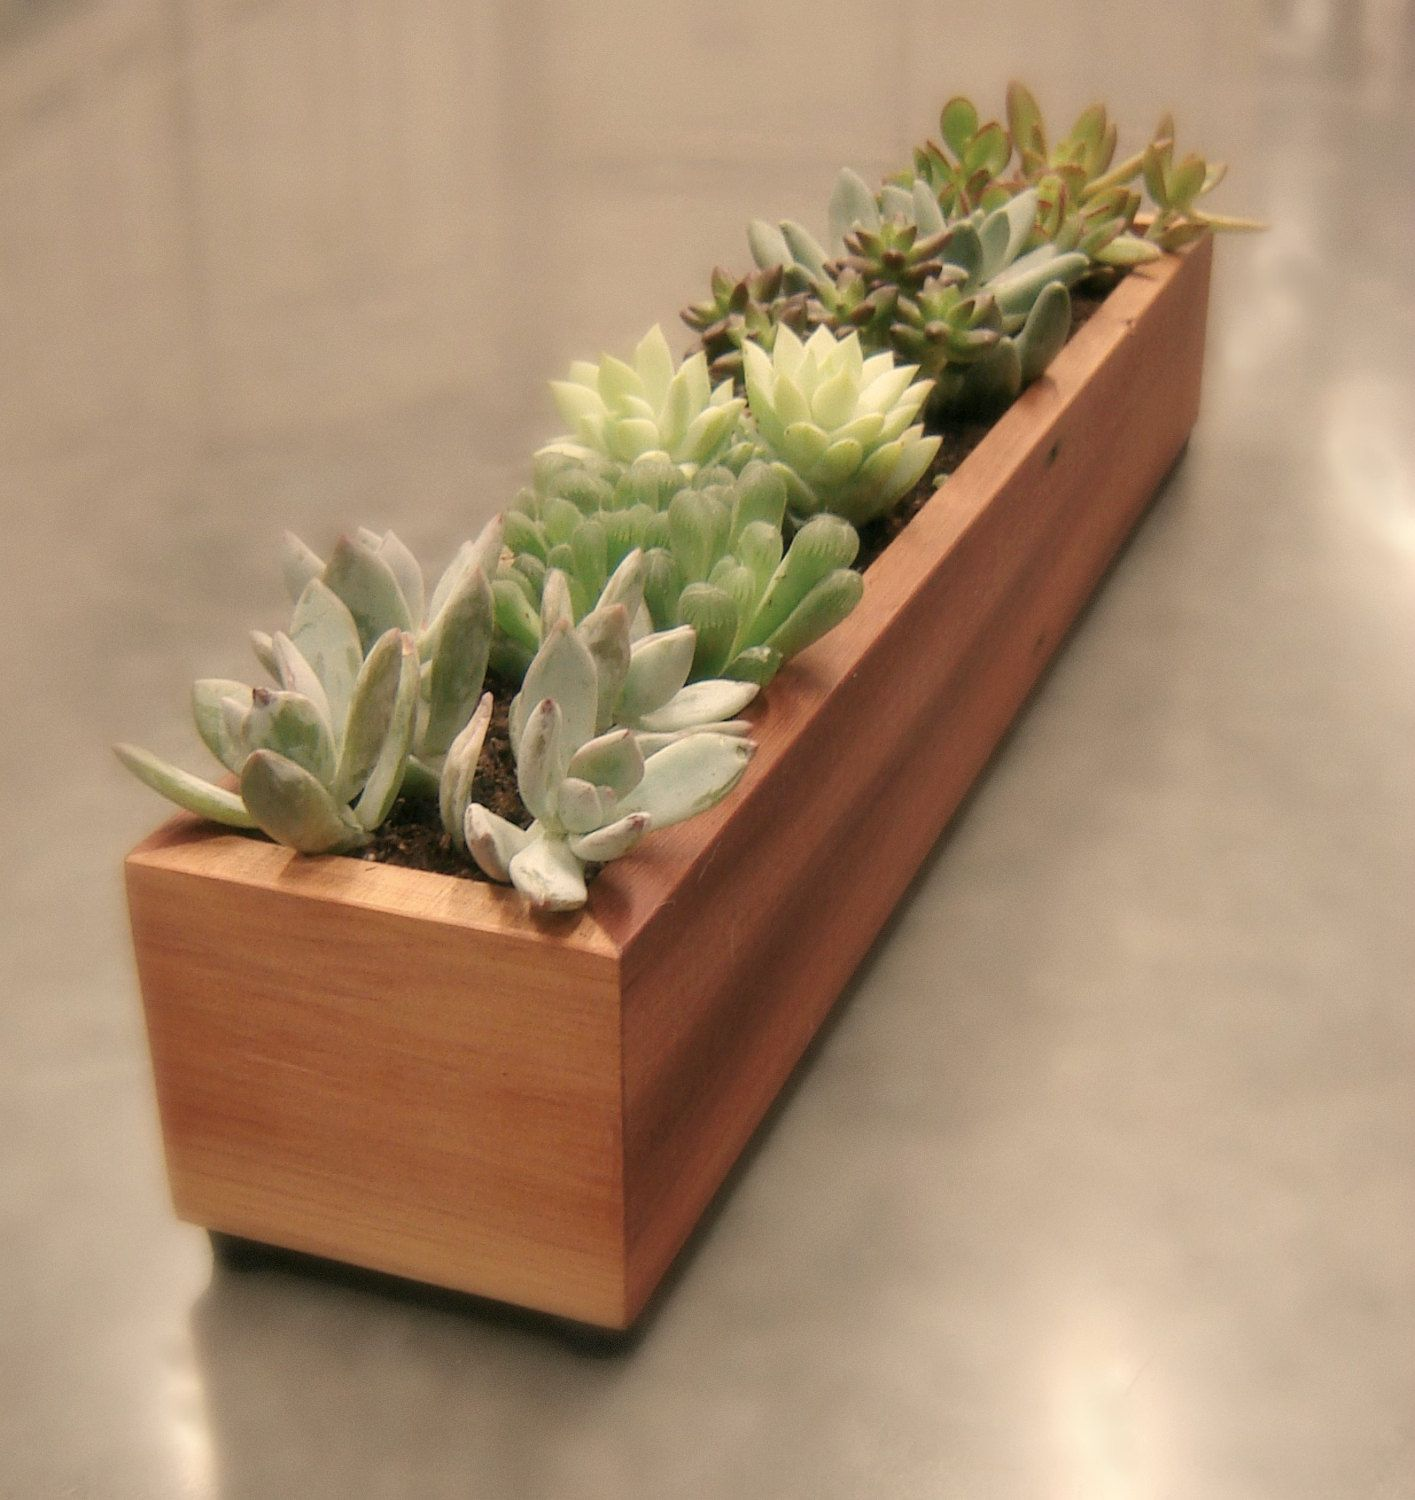 Indoor Planter Box Ideas: 16 Minimalistic Handmade Wooden Planter Designs